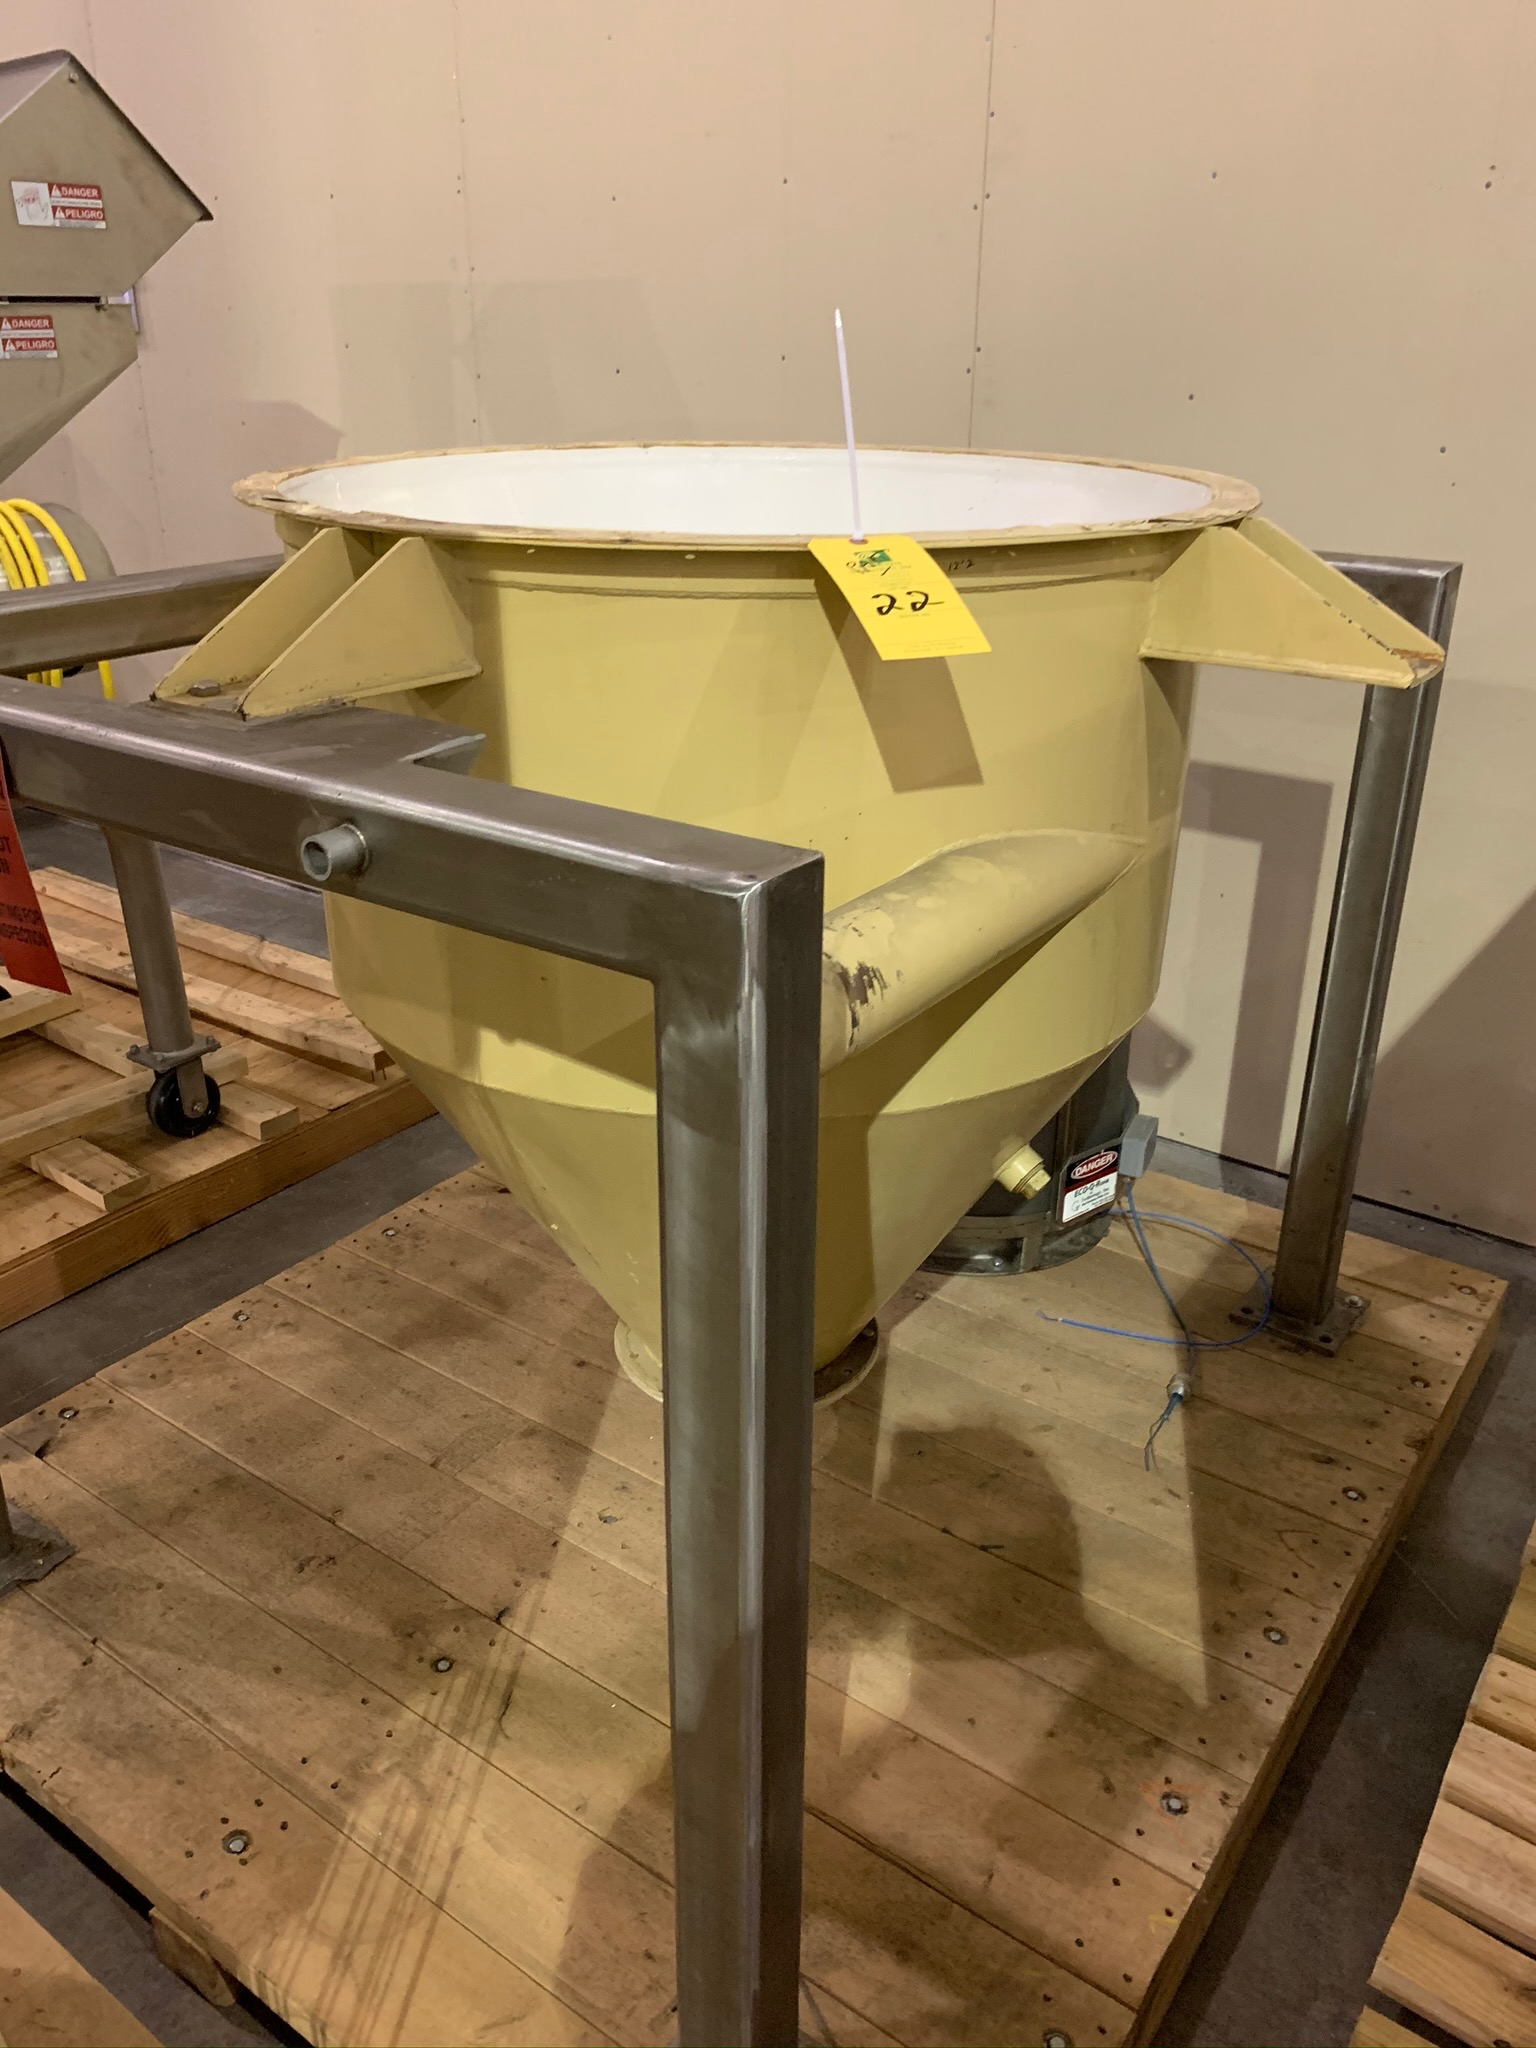 Premier Pneumatics Dust Collector Model FPC-P-E-14-58-102 S/N 5214-107 (Rigging Fee - $250) - Image 3 of 5